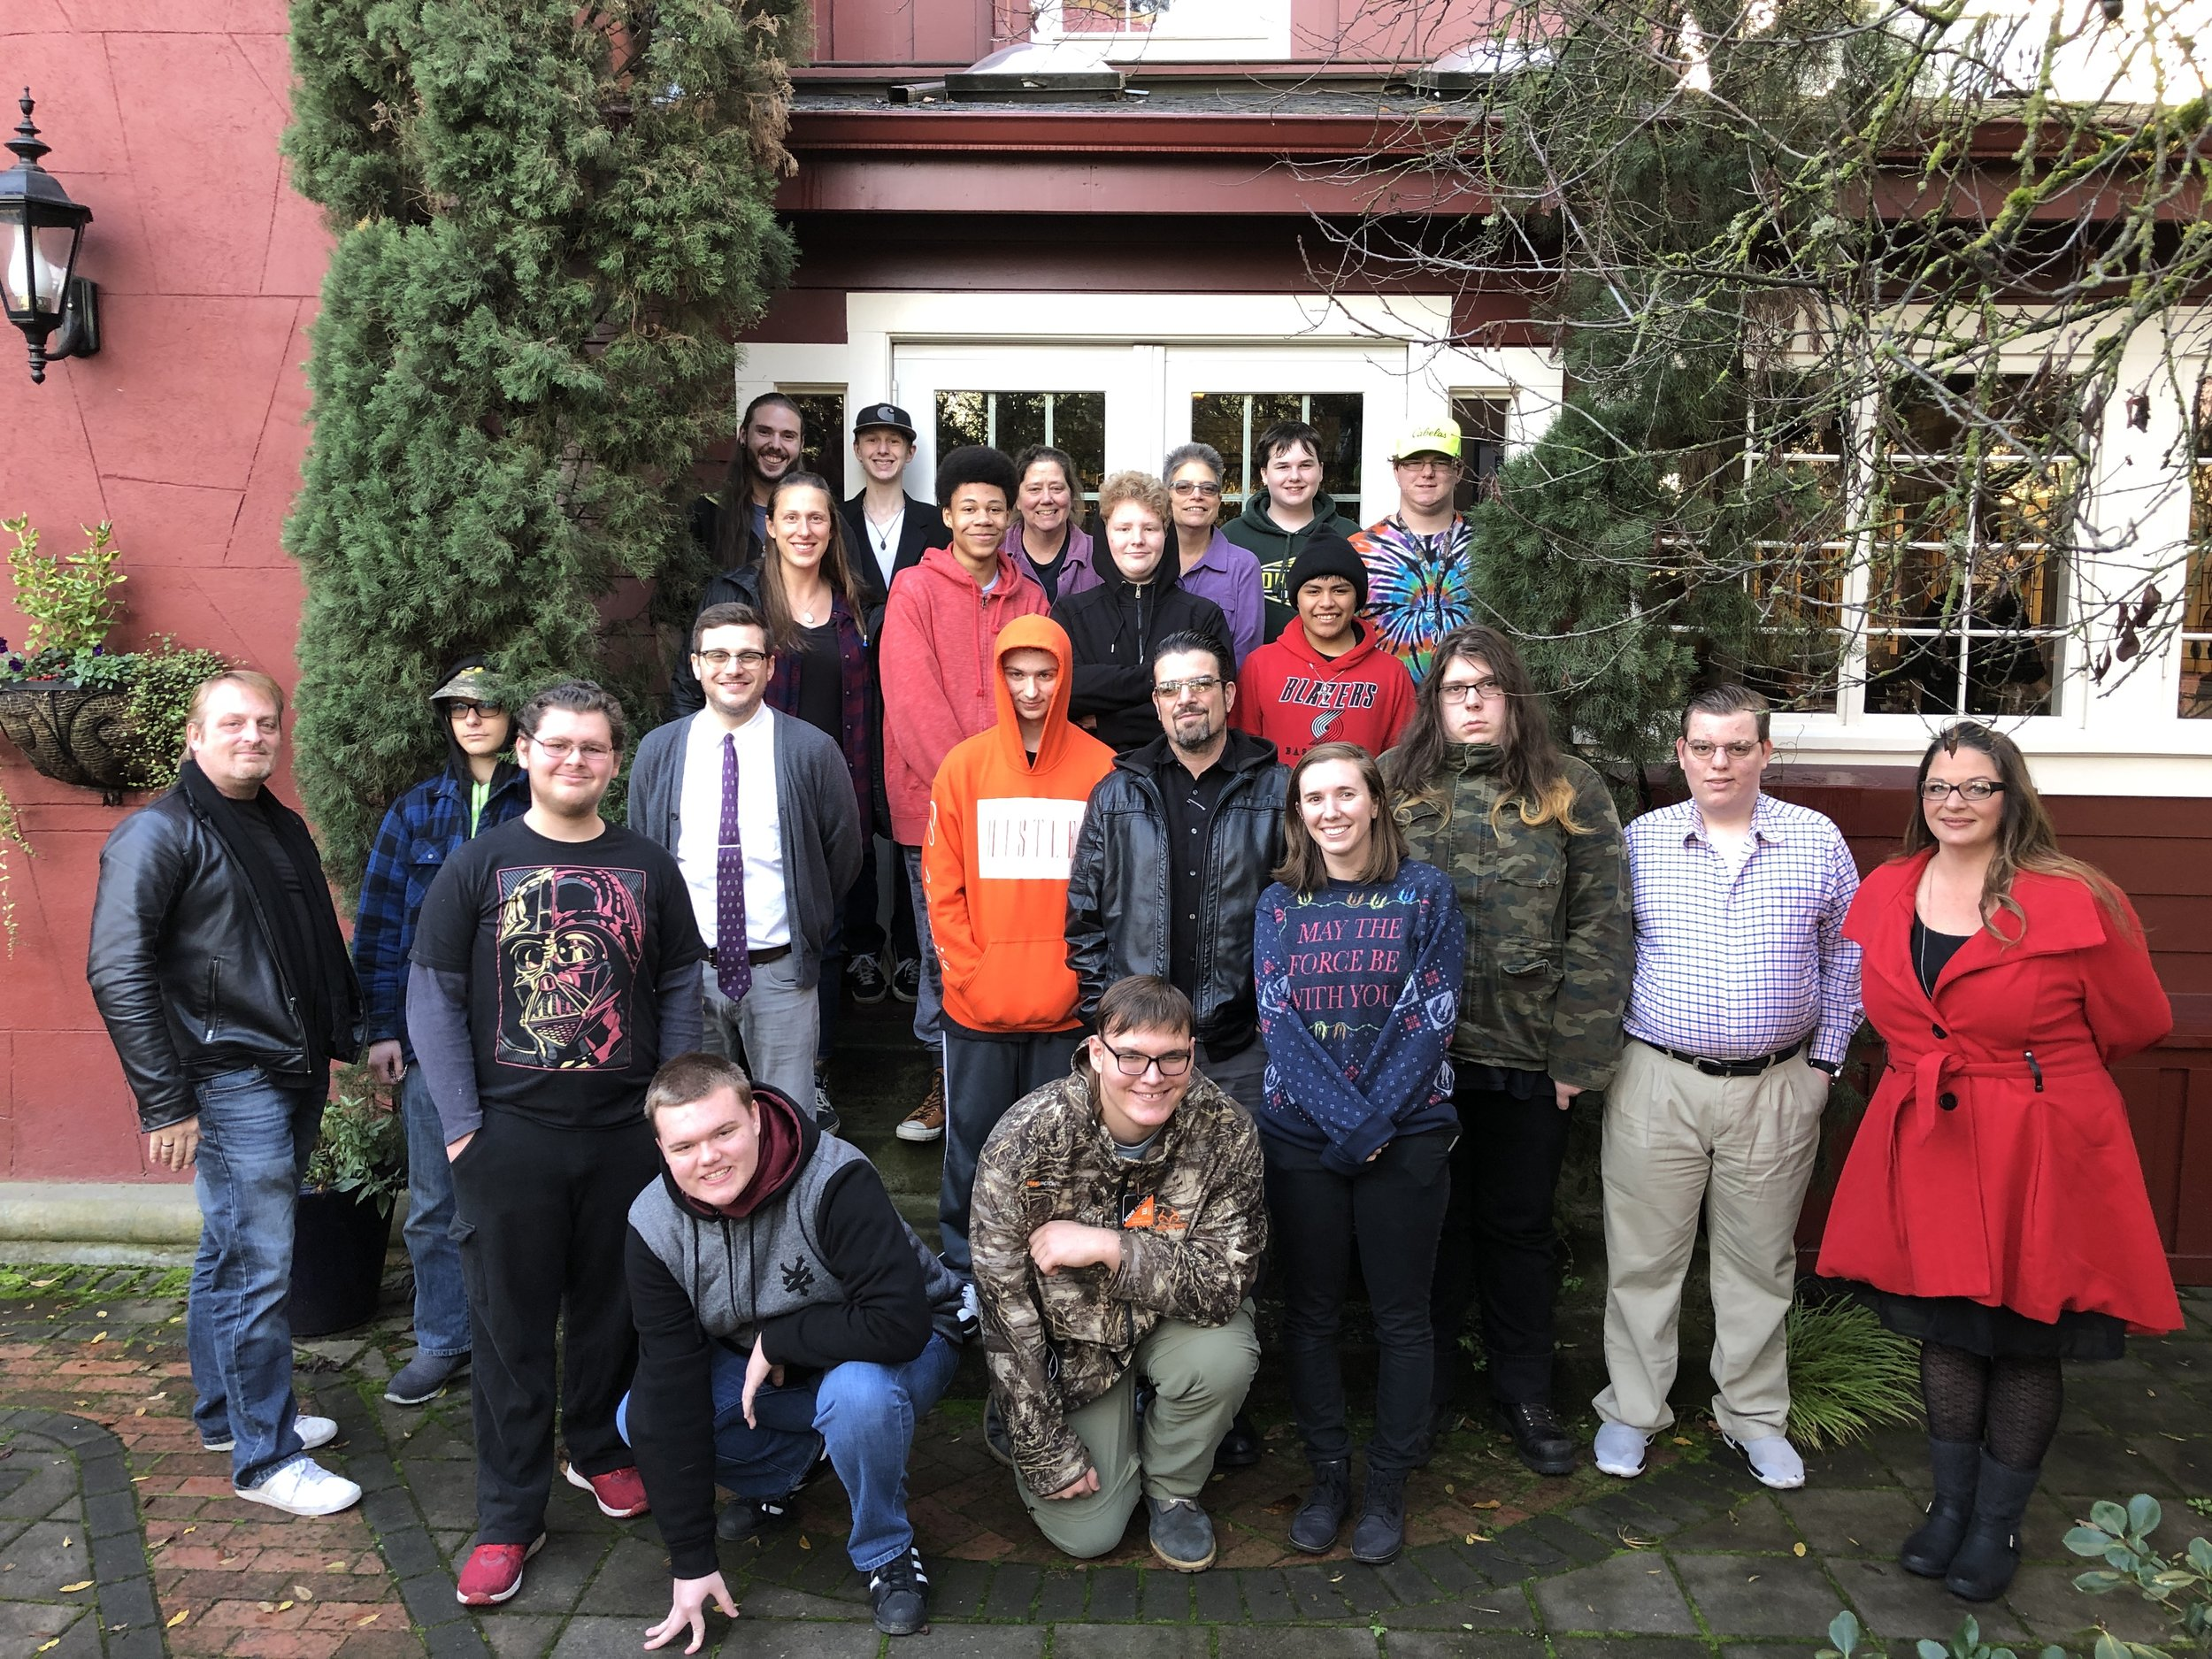 Center Point School staff and students pose outside of the Excelsior Inn after enjoying their annual holiday breakfast celebration.